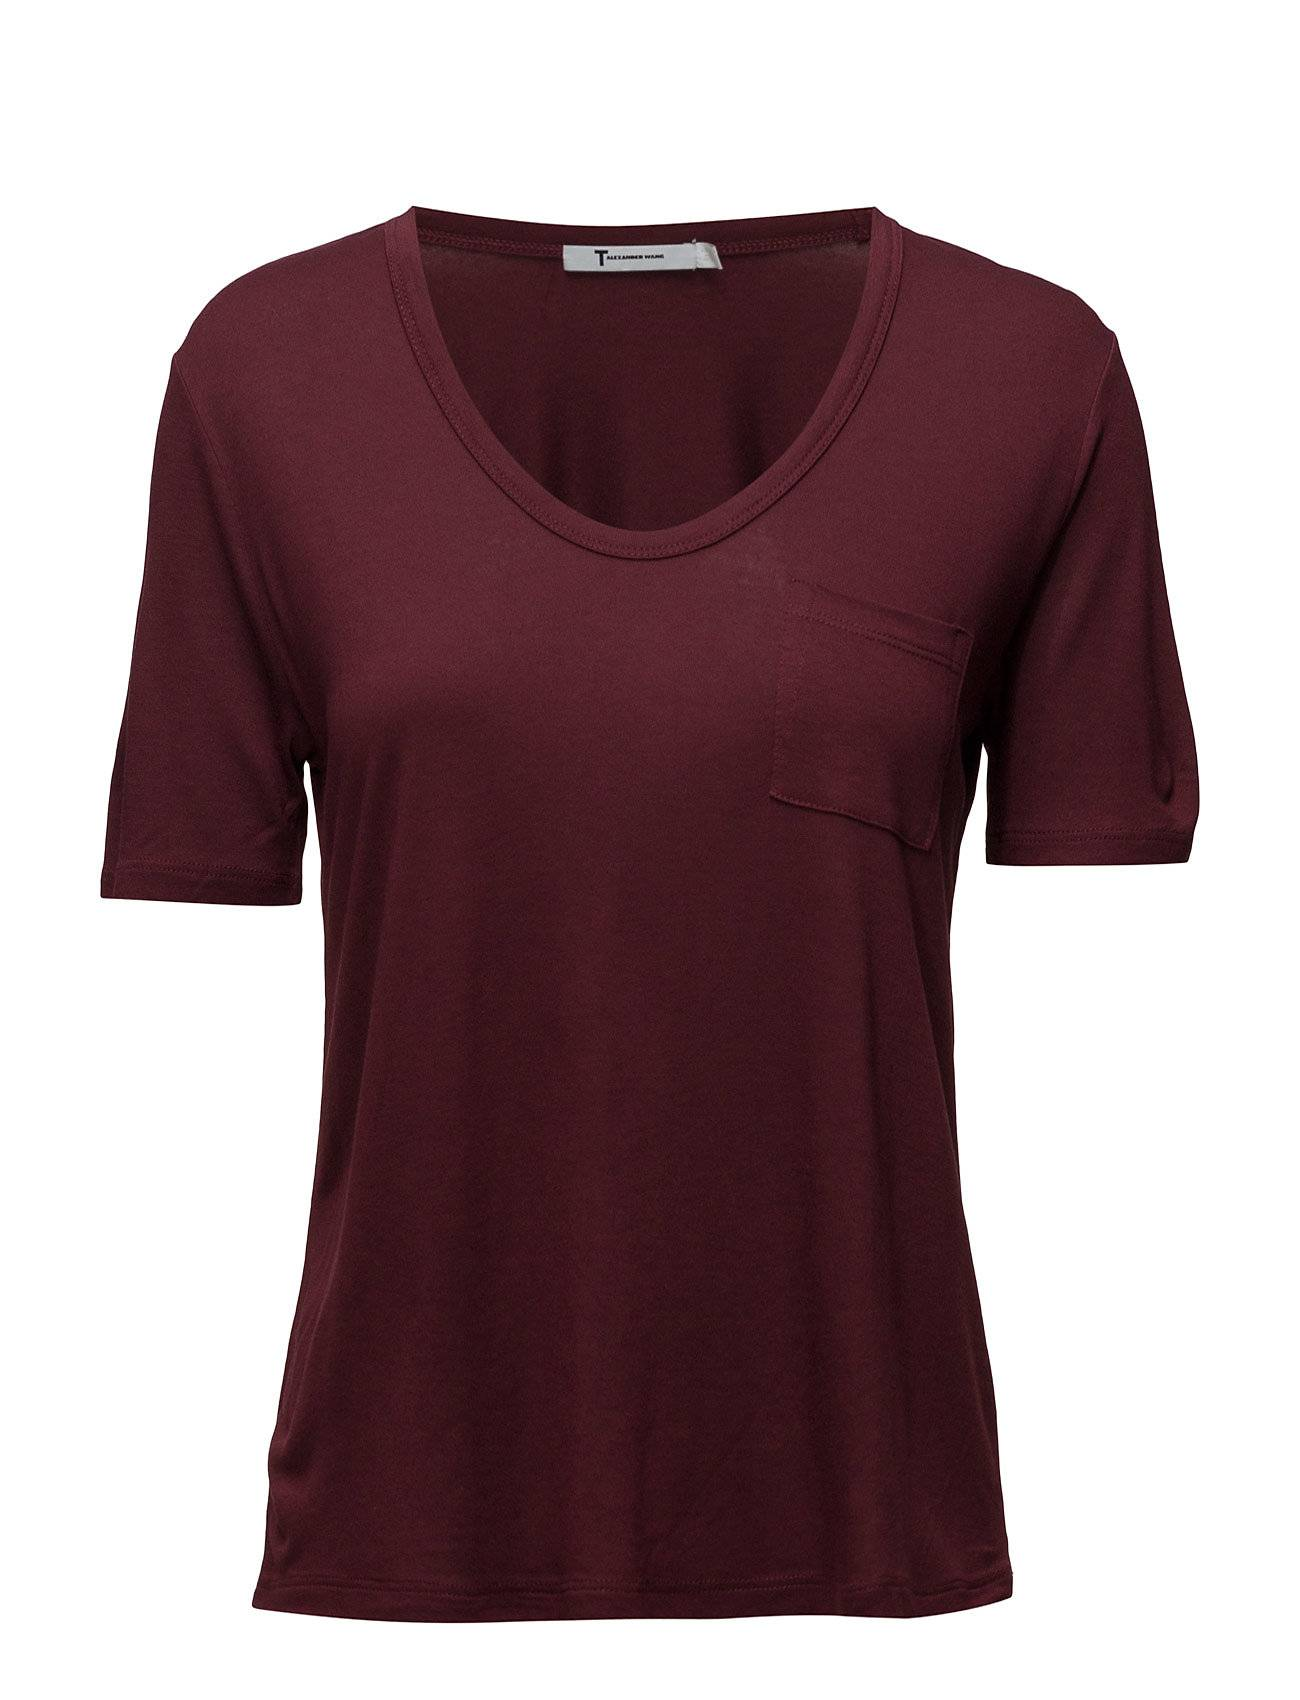 T by Alexander Wang Cropped Tee Withchest Pocket